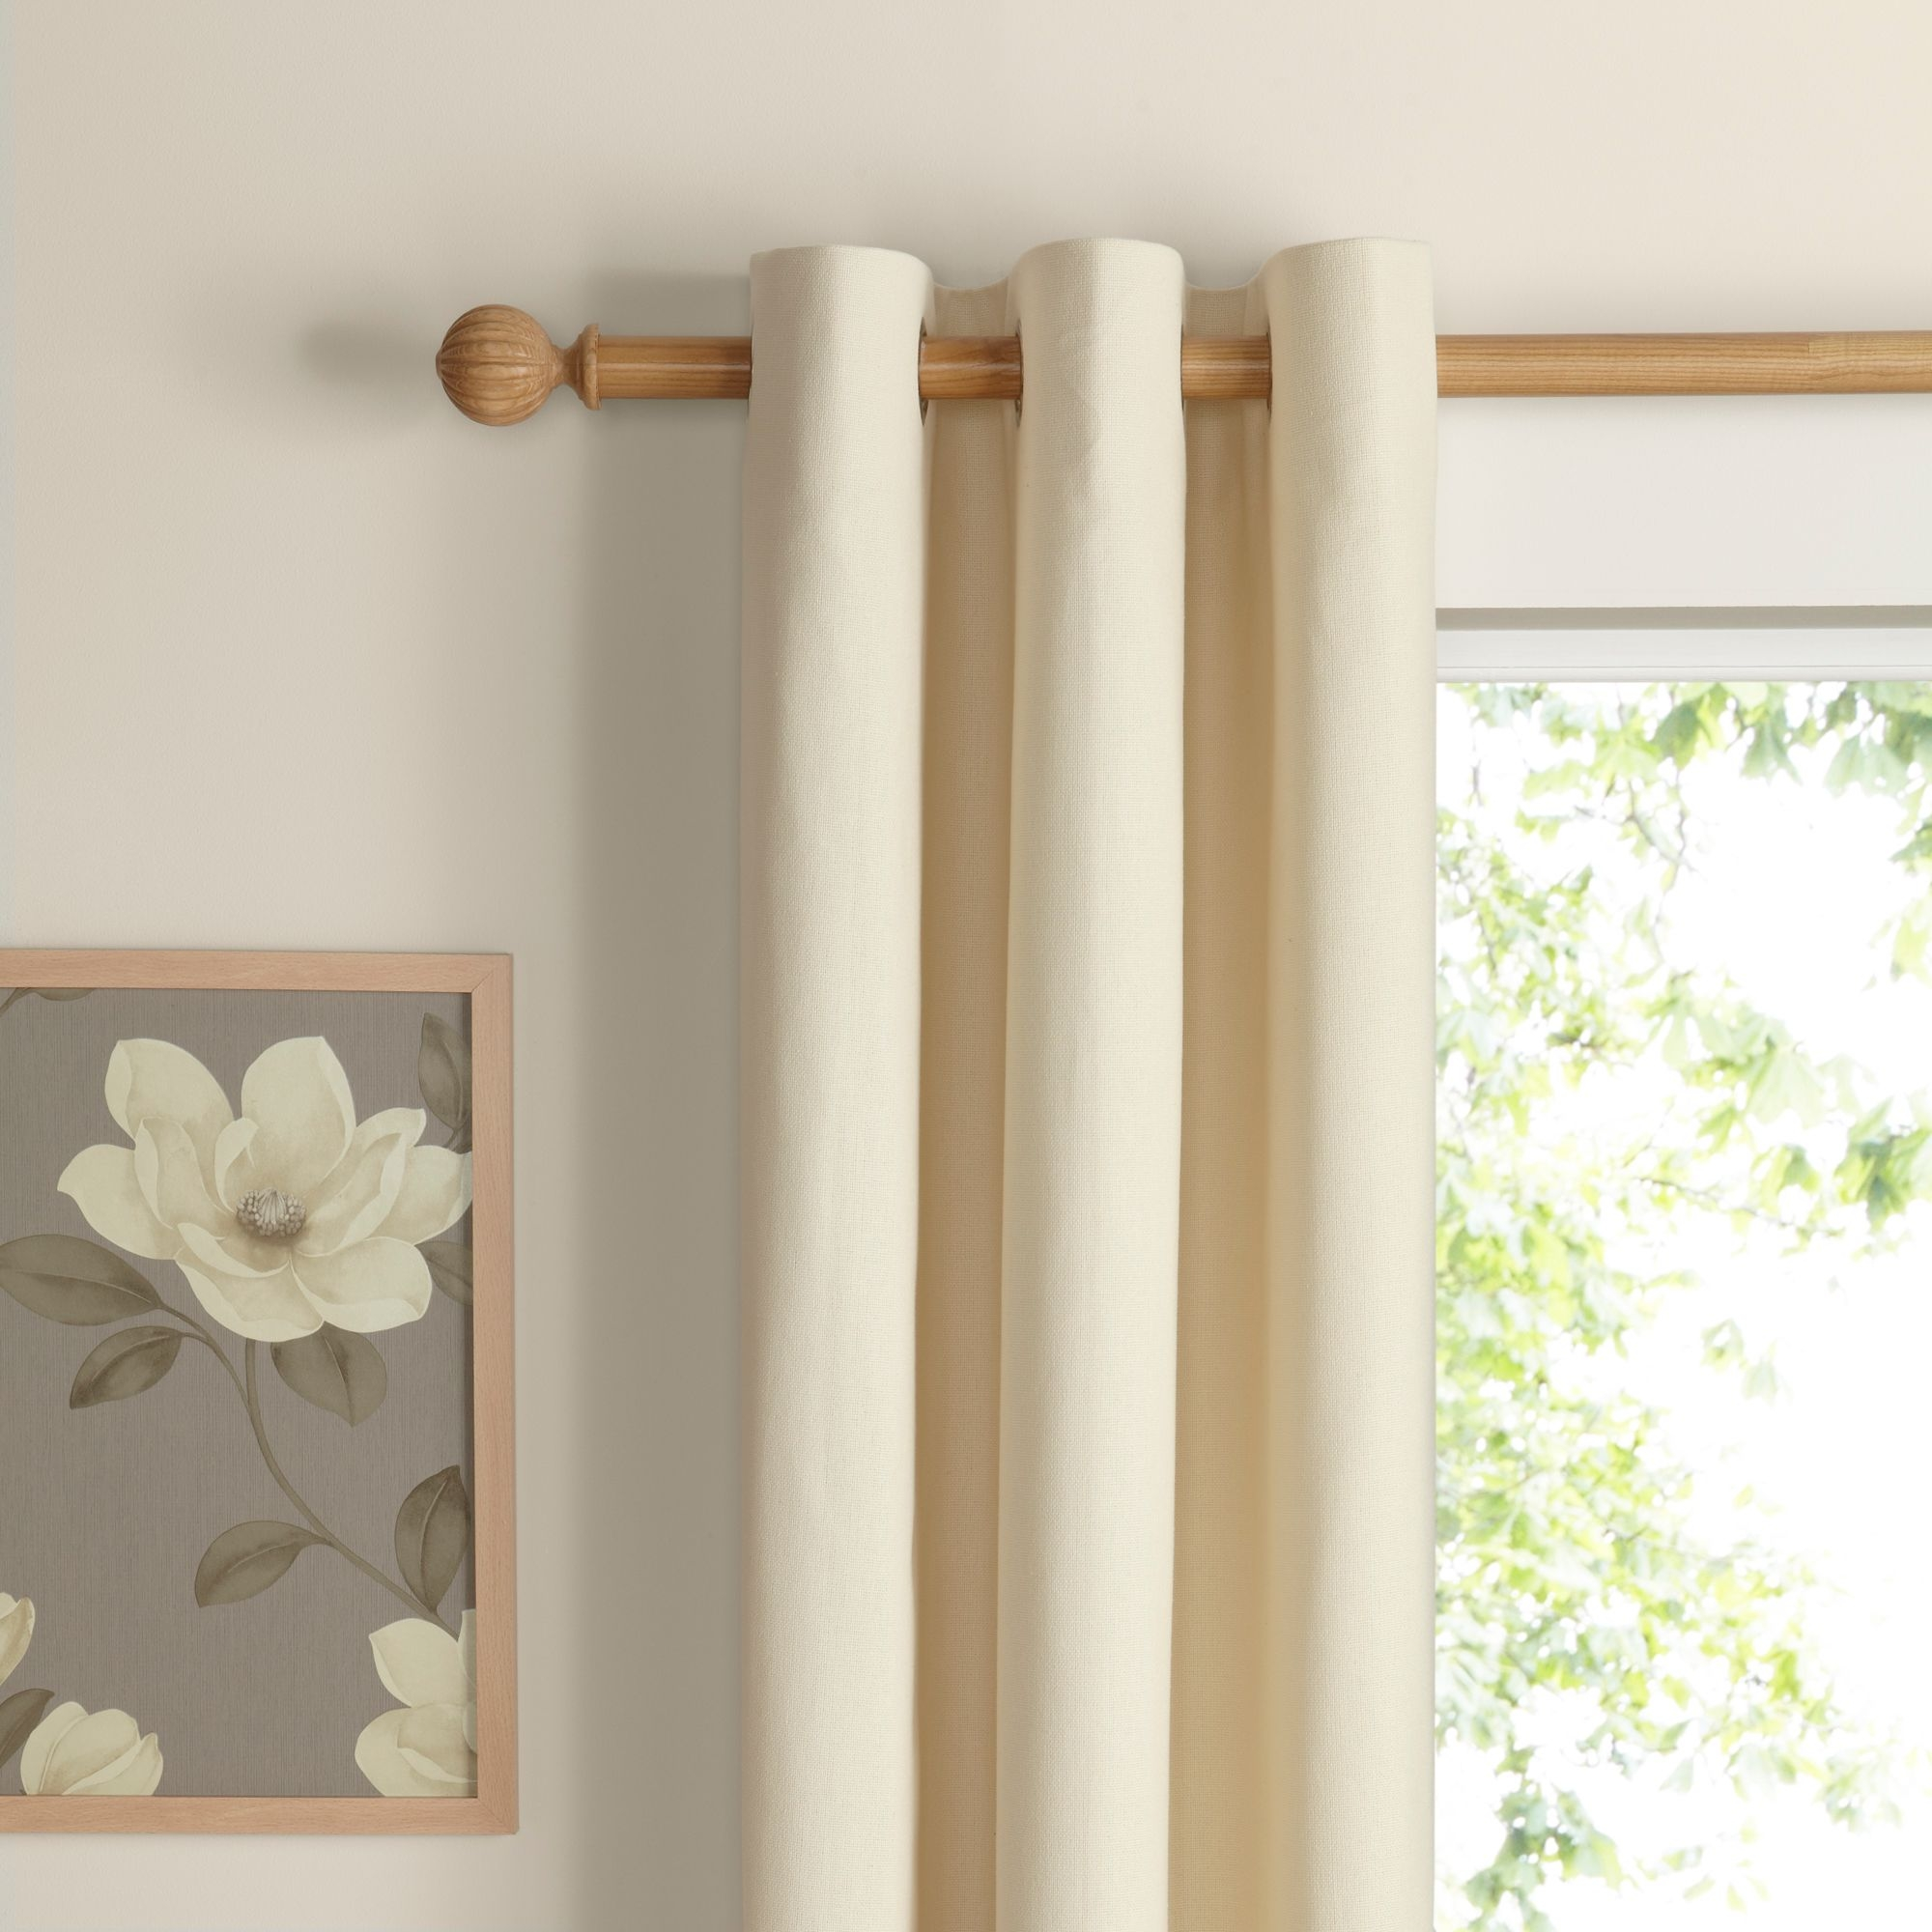 Salla Ecru Plain Woven Eyelet Lined Curtains W167cm L228cm X Regarding Lined Cotton Curtains (Image 15 of 15)